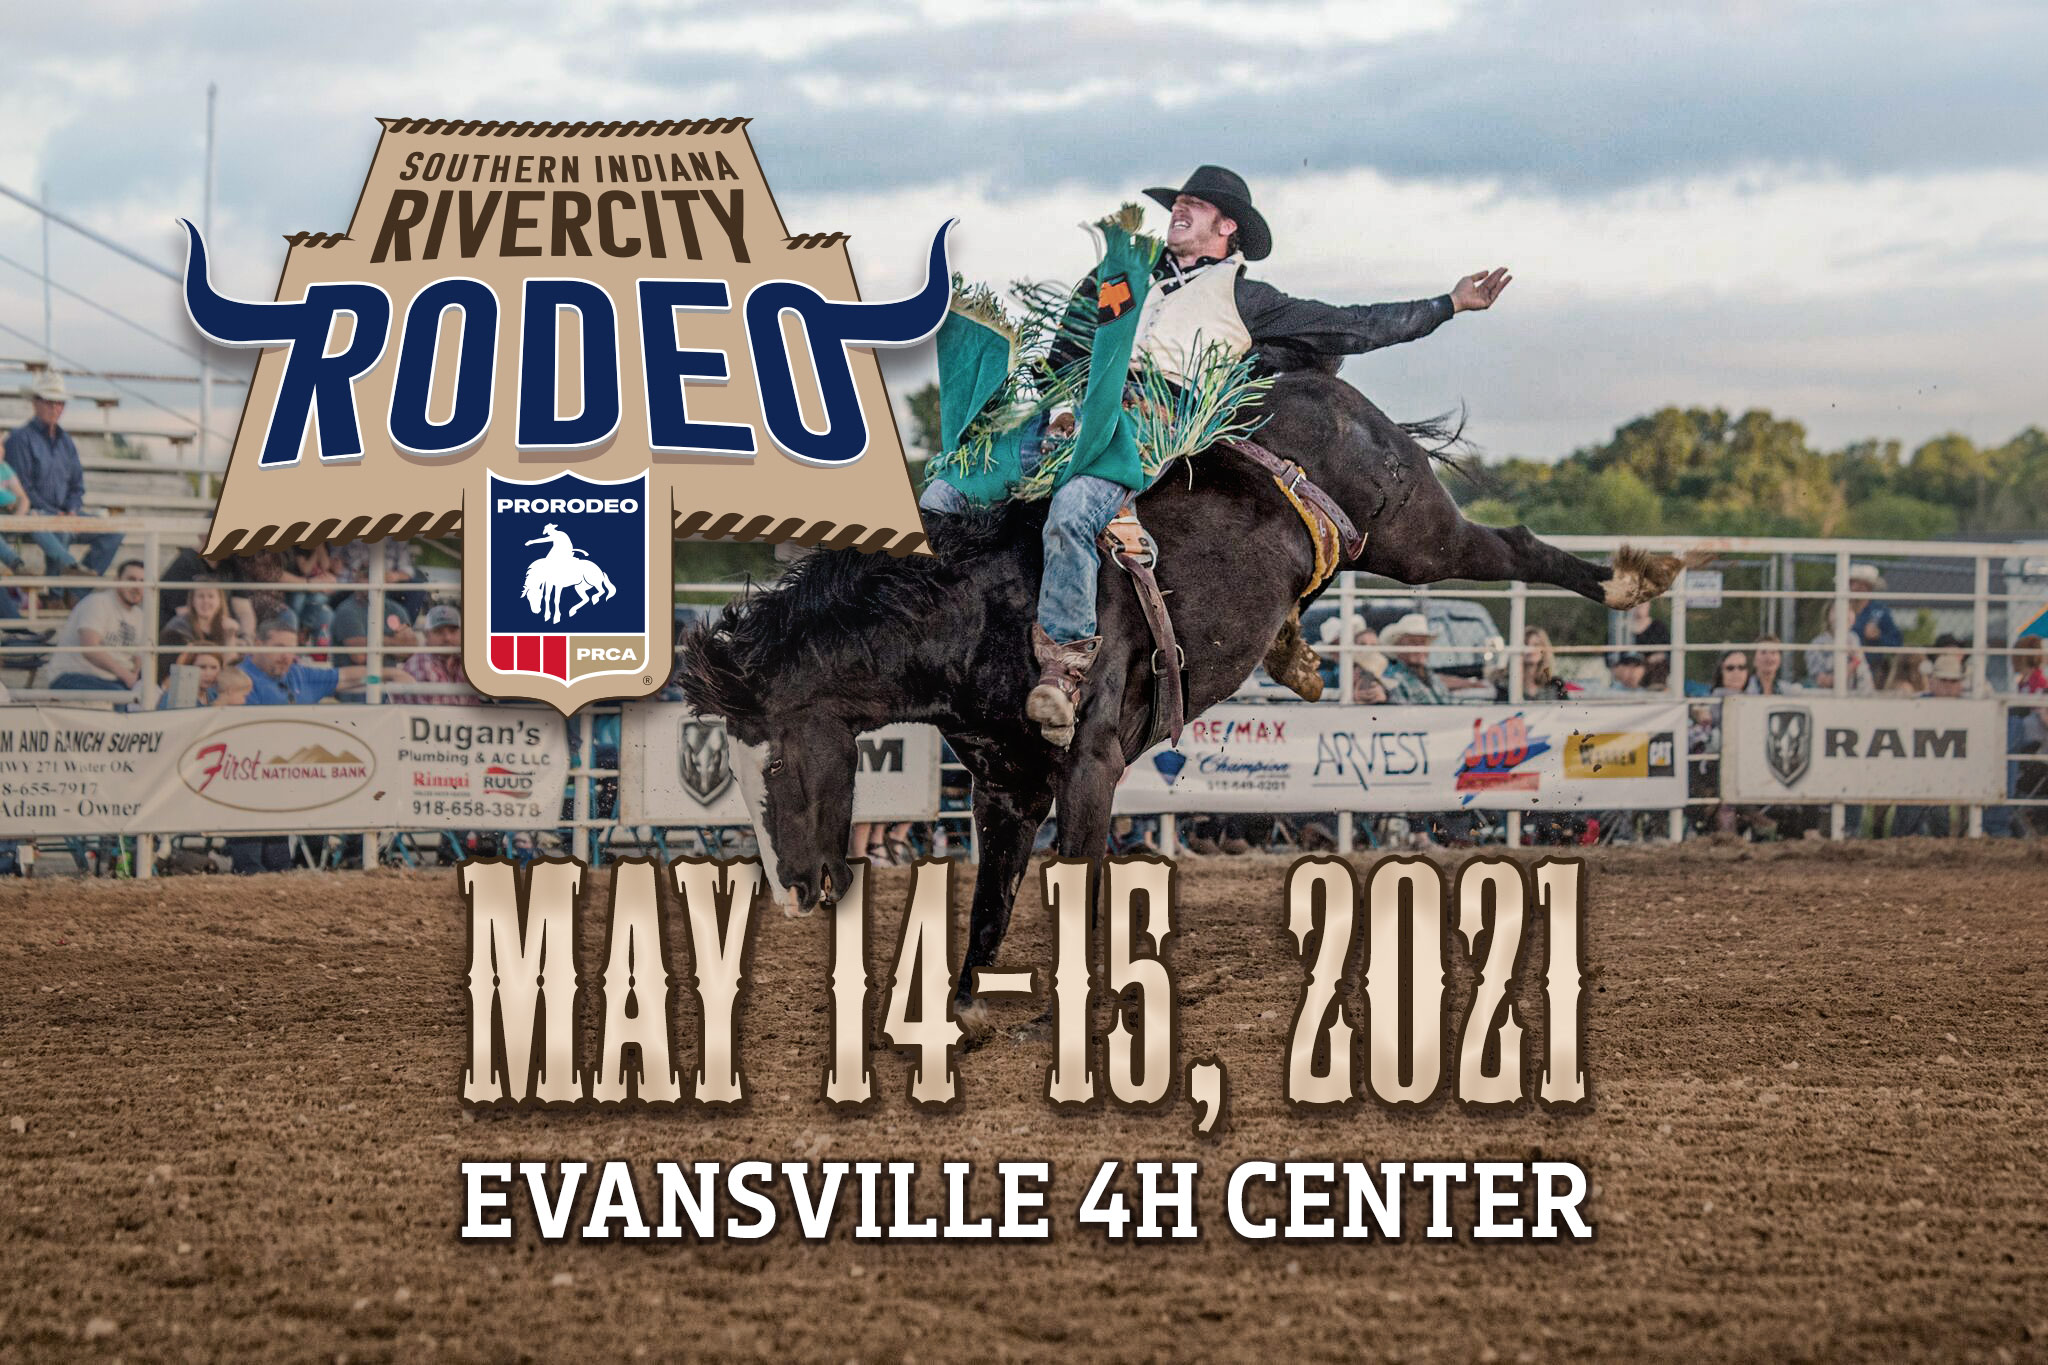 SOUTHERN INDIANA RIVERCITY RODEO